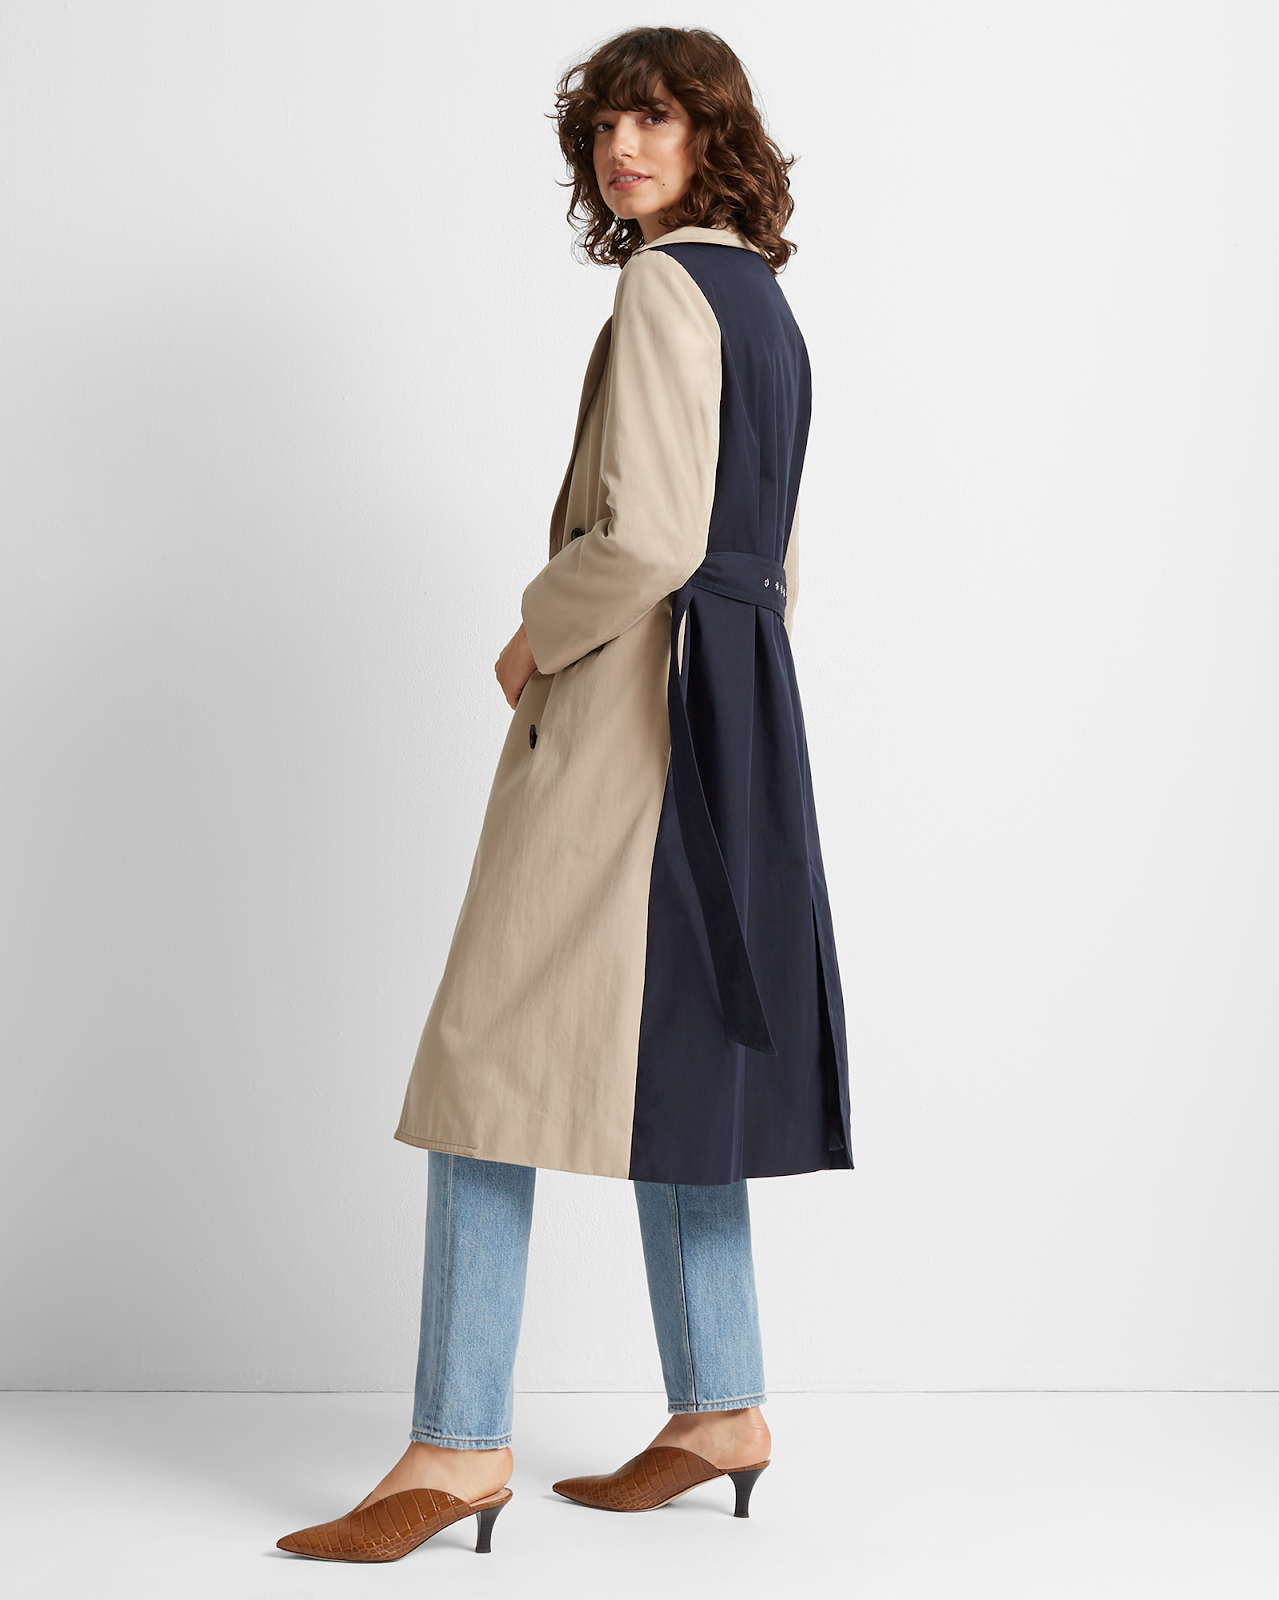 This Colorblock Trench Coat Makes Quite the Statement